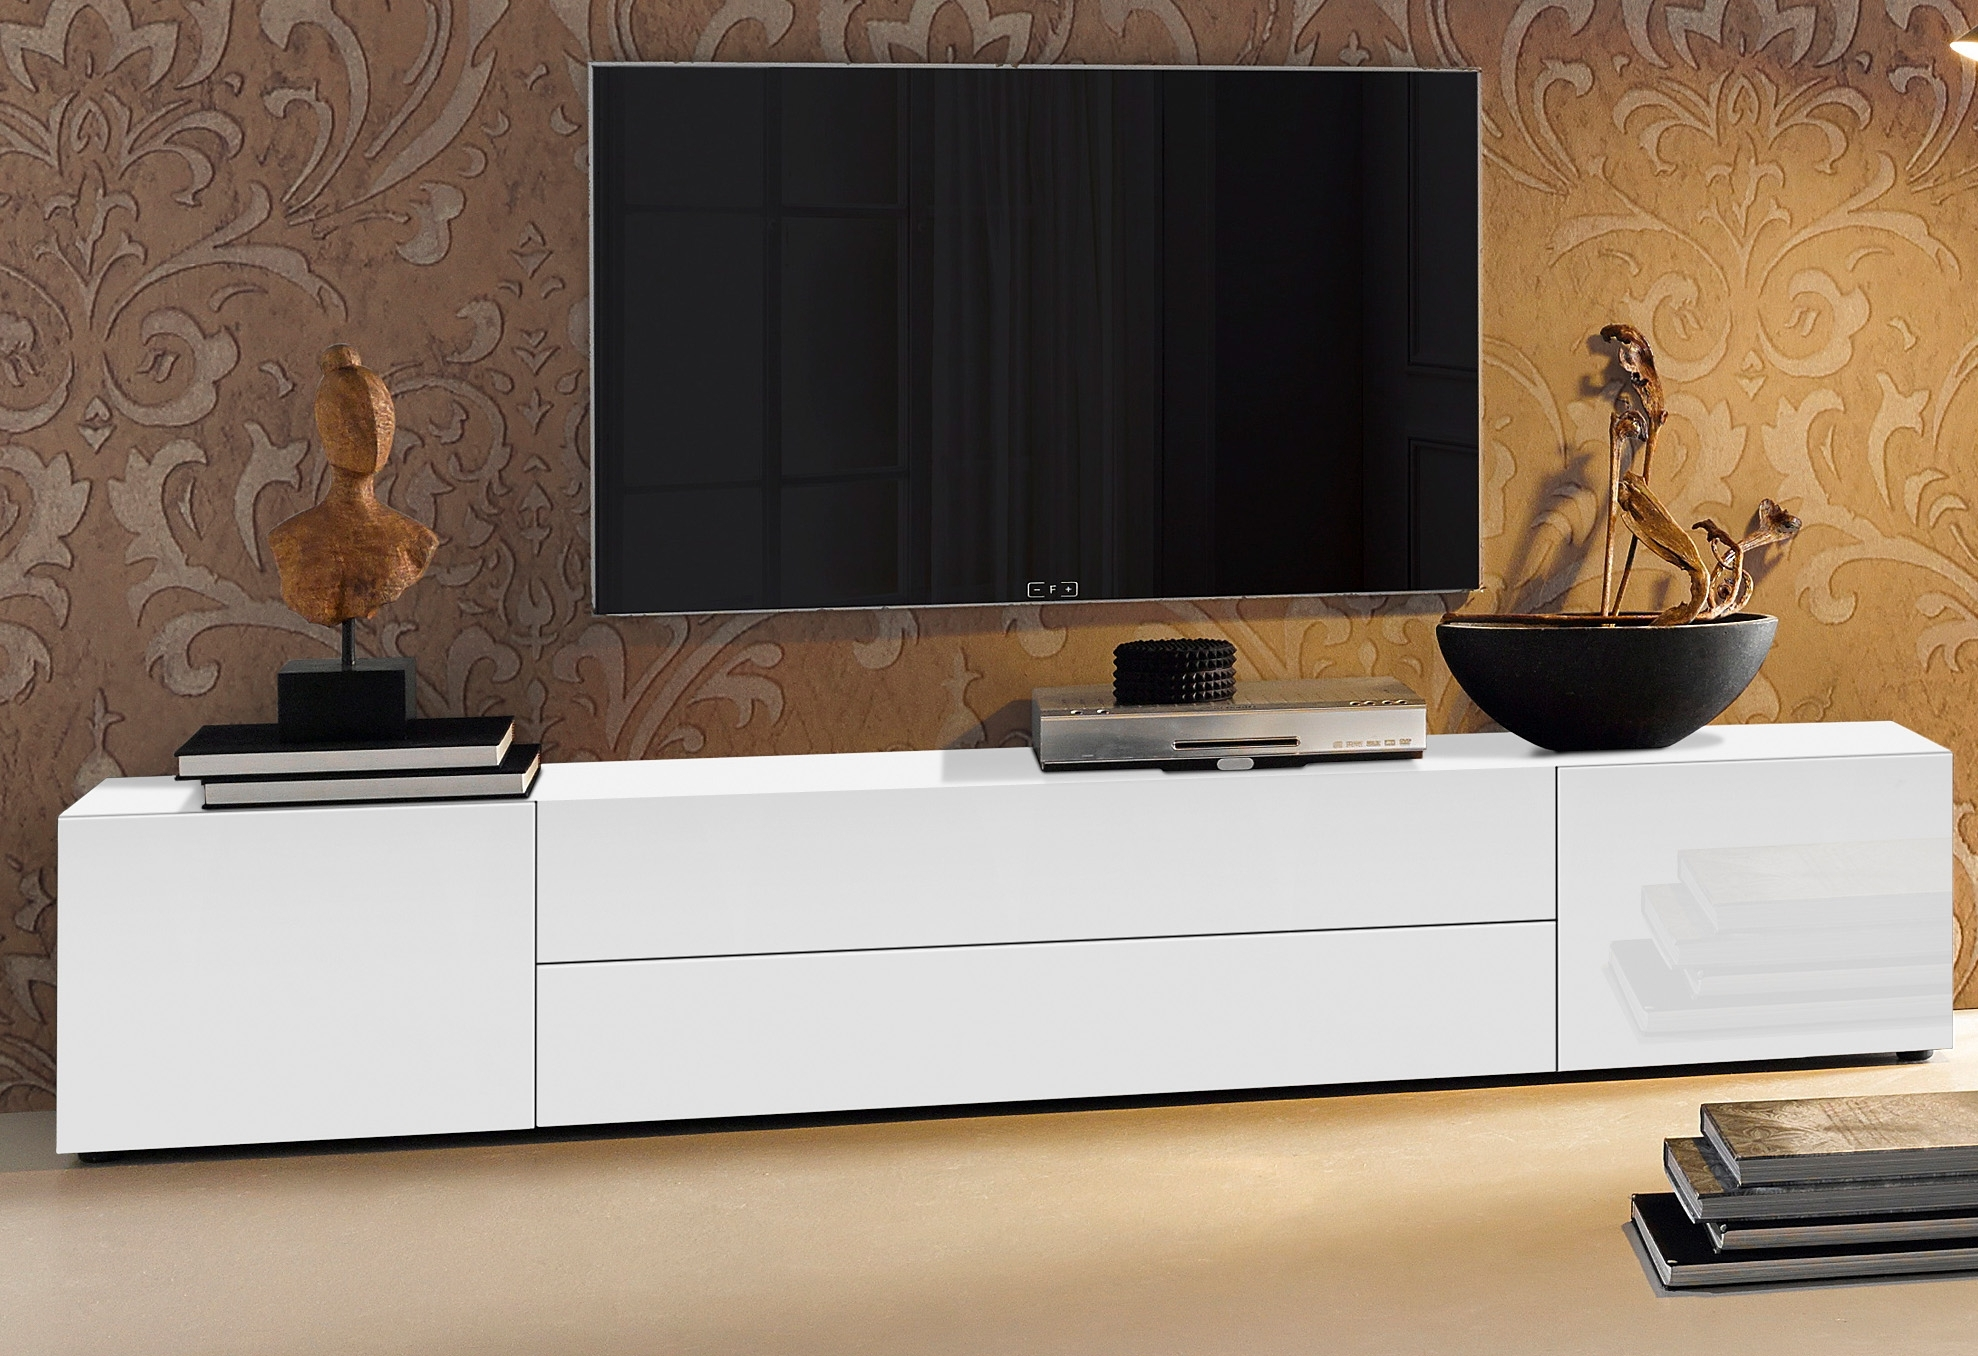 tv meubel 250 cm free populair with tv meubel 250 cm best cm breed joy meubel in mat zwart met. Black Bedroom Furniture Sets. Home Design Ideas